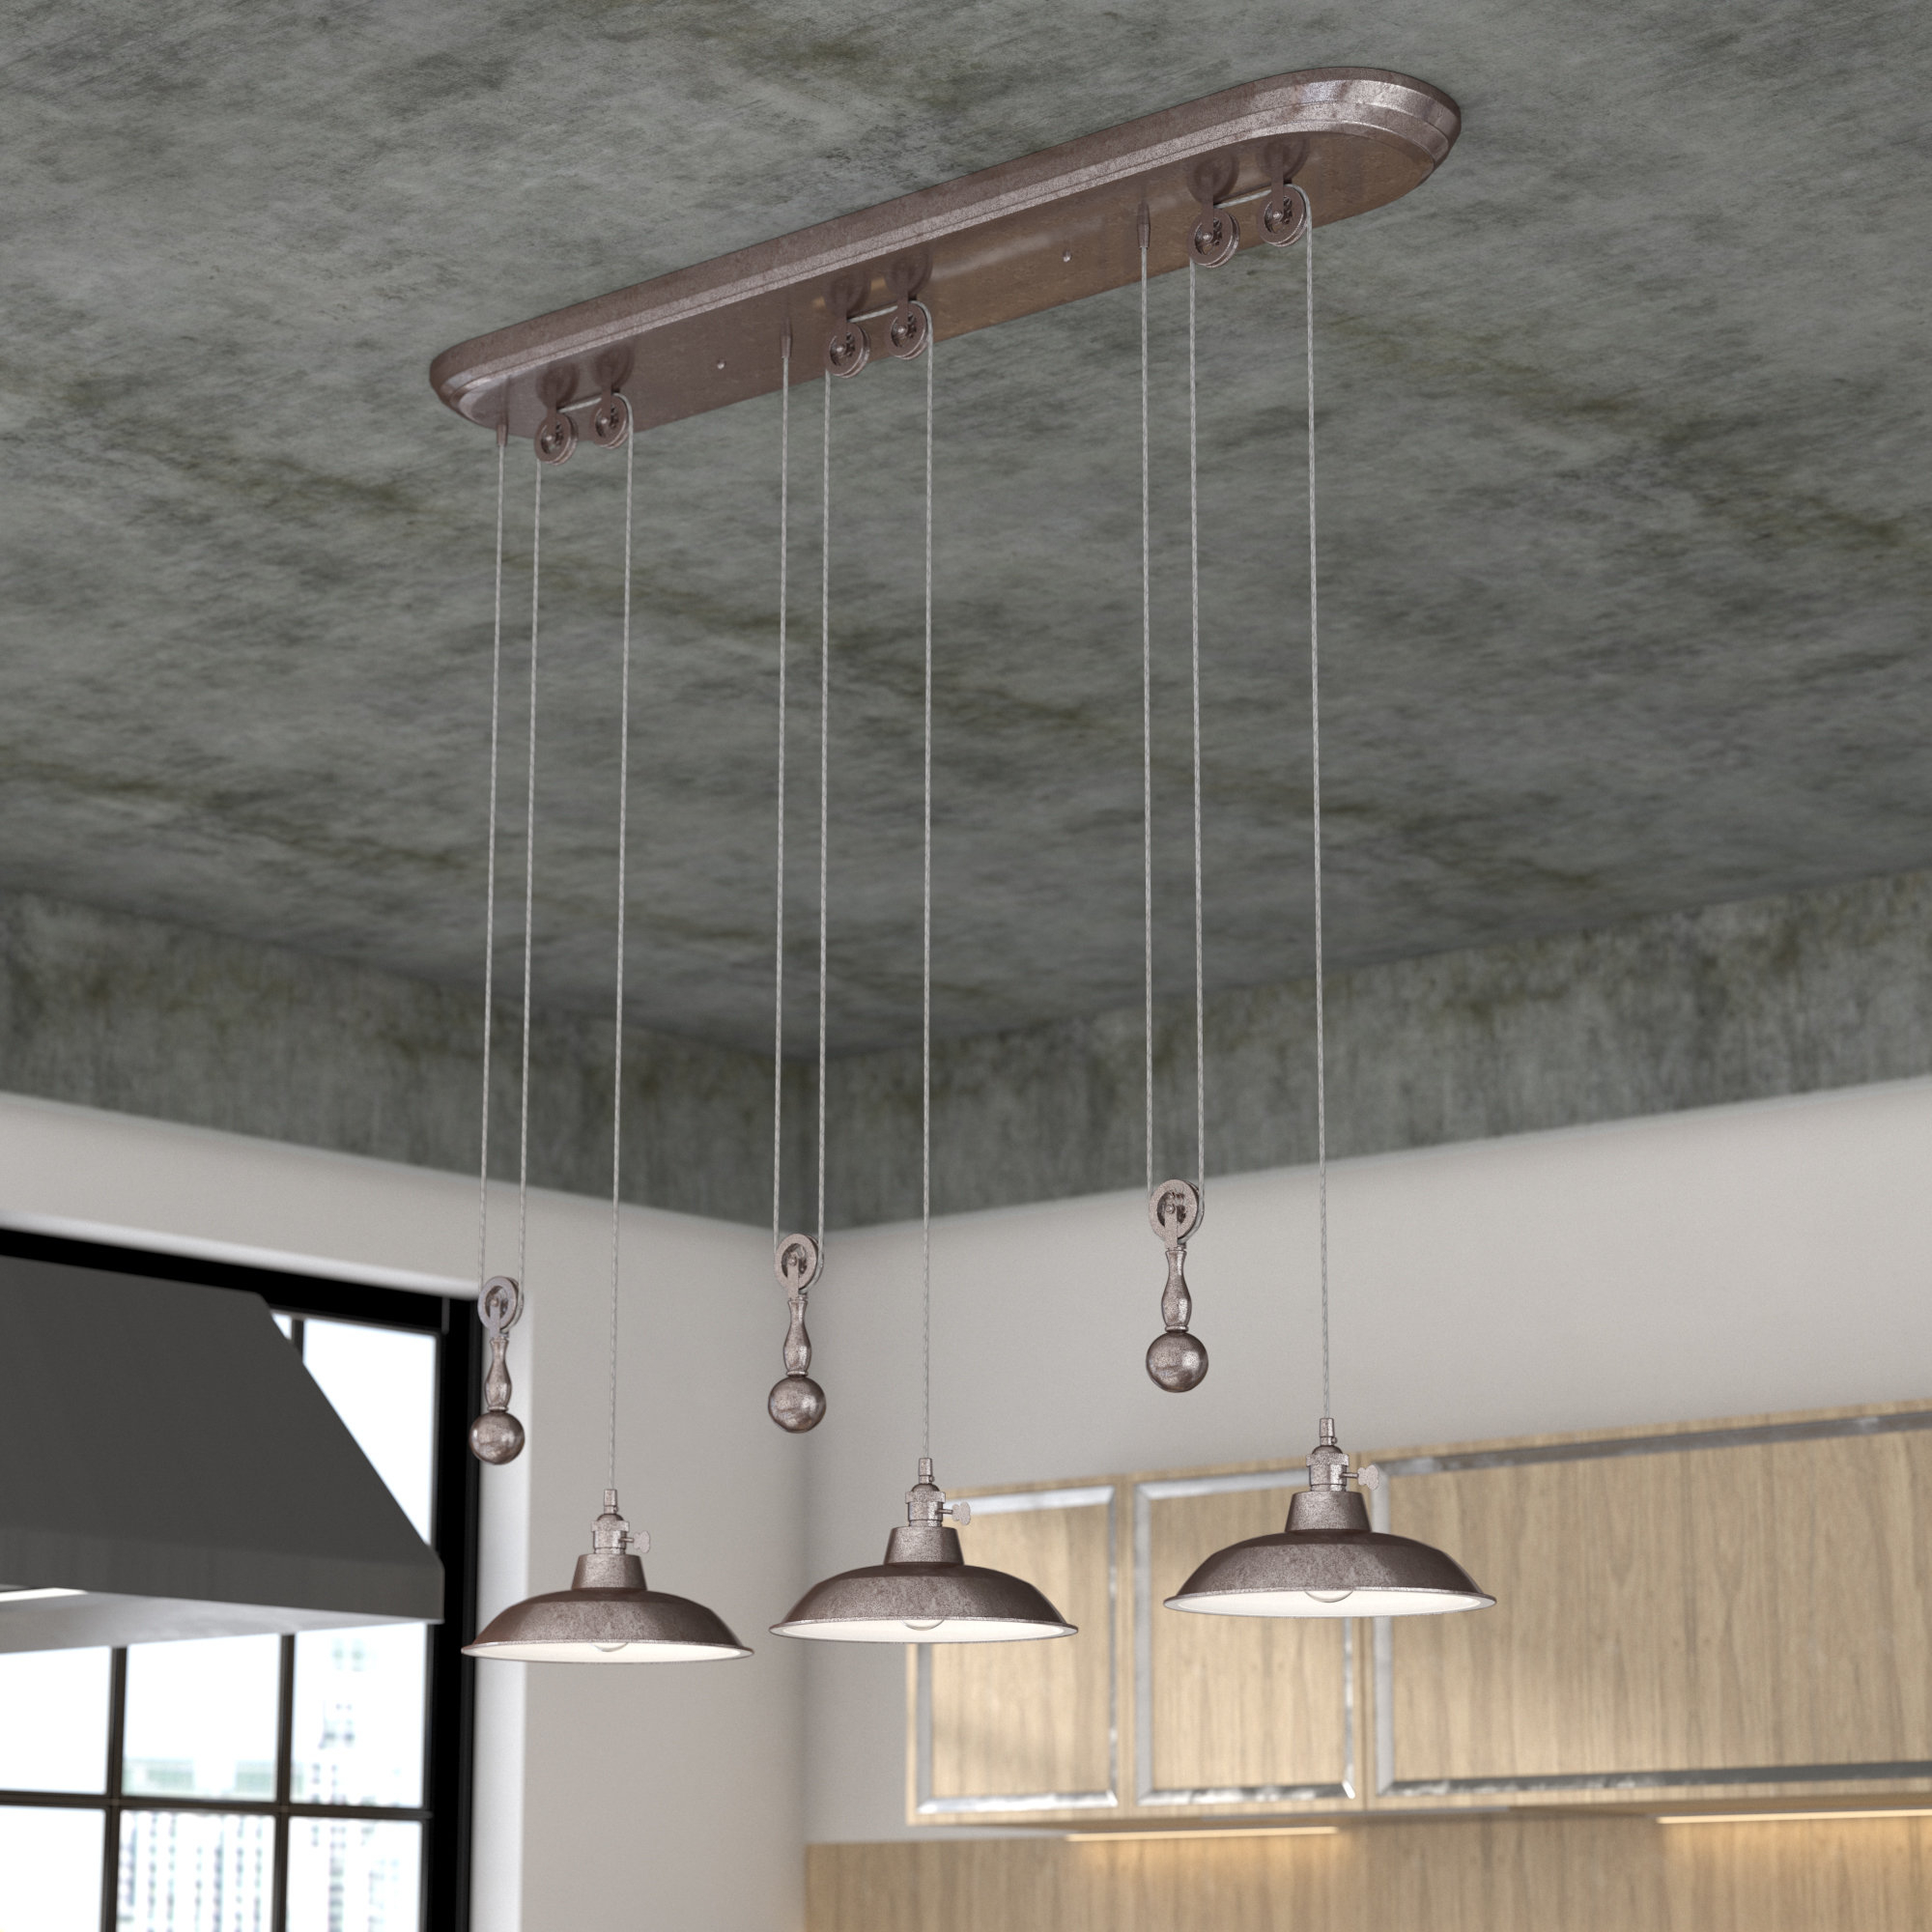 Most Recent Dome Metal Pendant Lighting You'll Love In  (View 13 of 20)